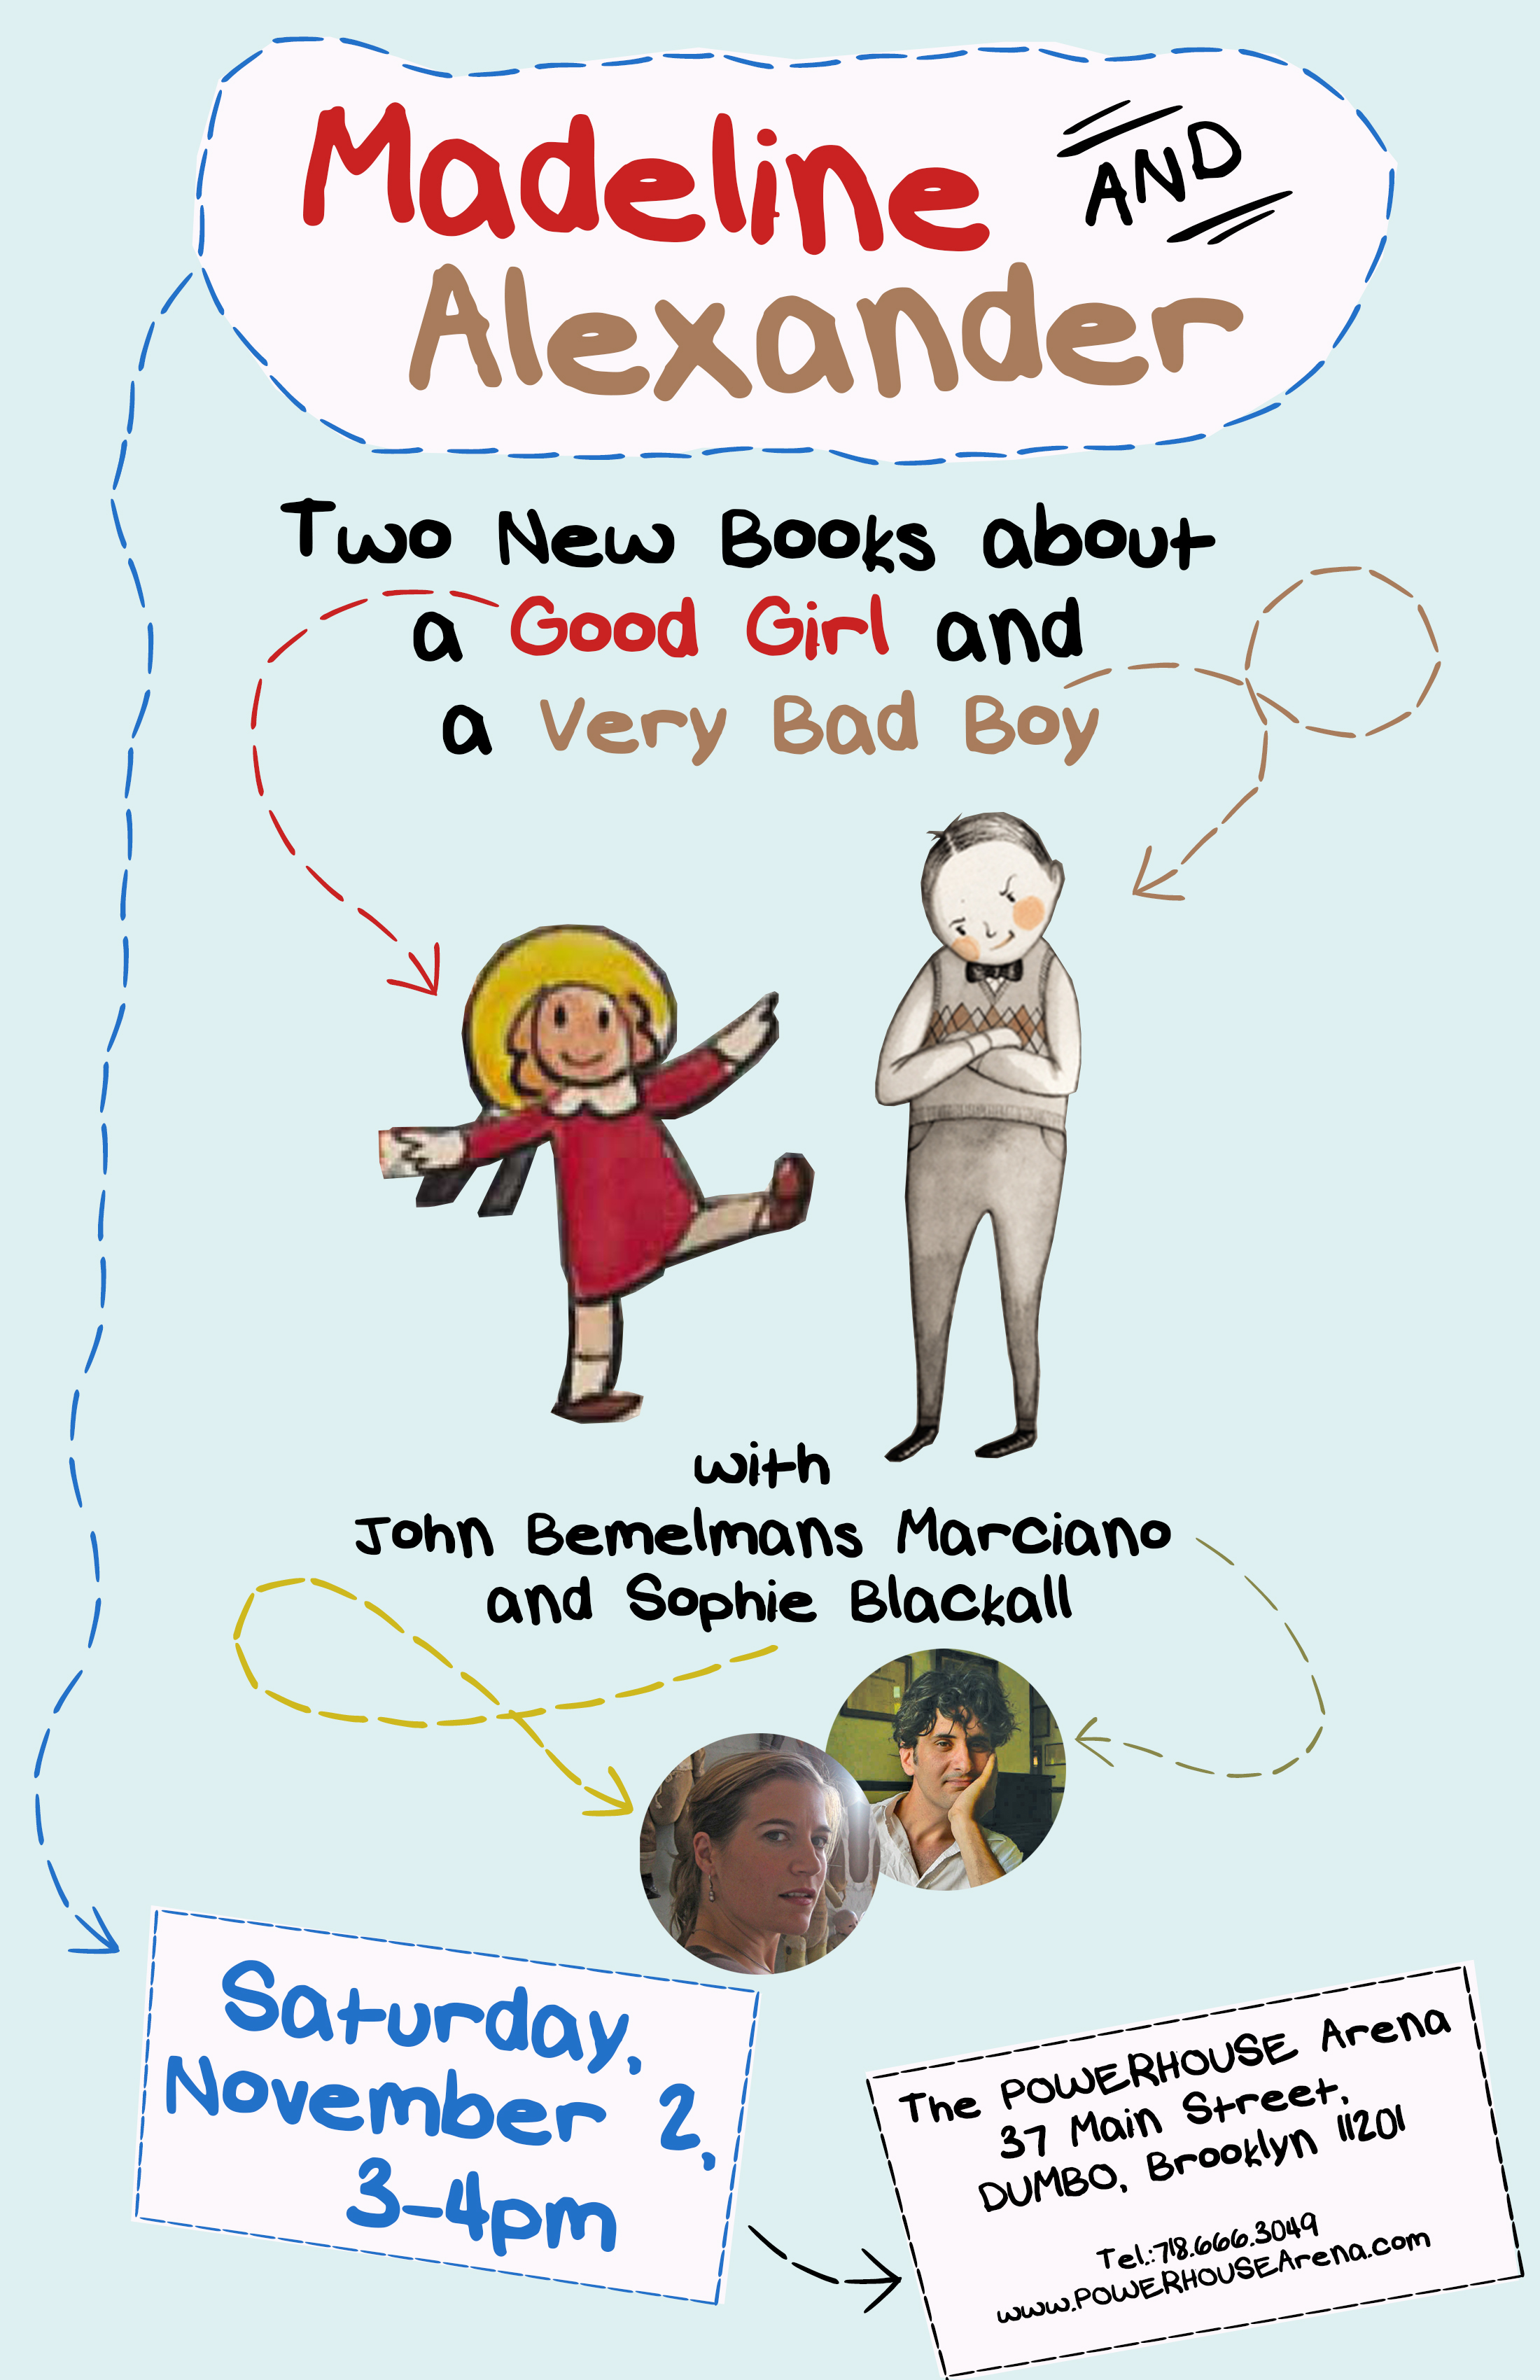 Madeline and Alexander [Baddenfield]: Two New Books about a Good Girl and a Very Bad Boy; with John Bemelmans Marciano and Sophie Blackall